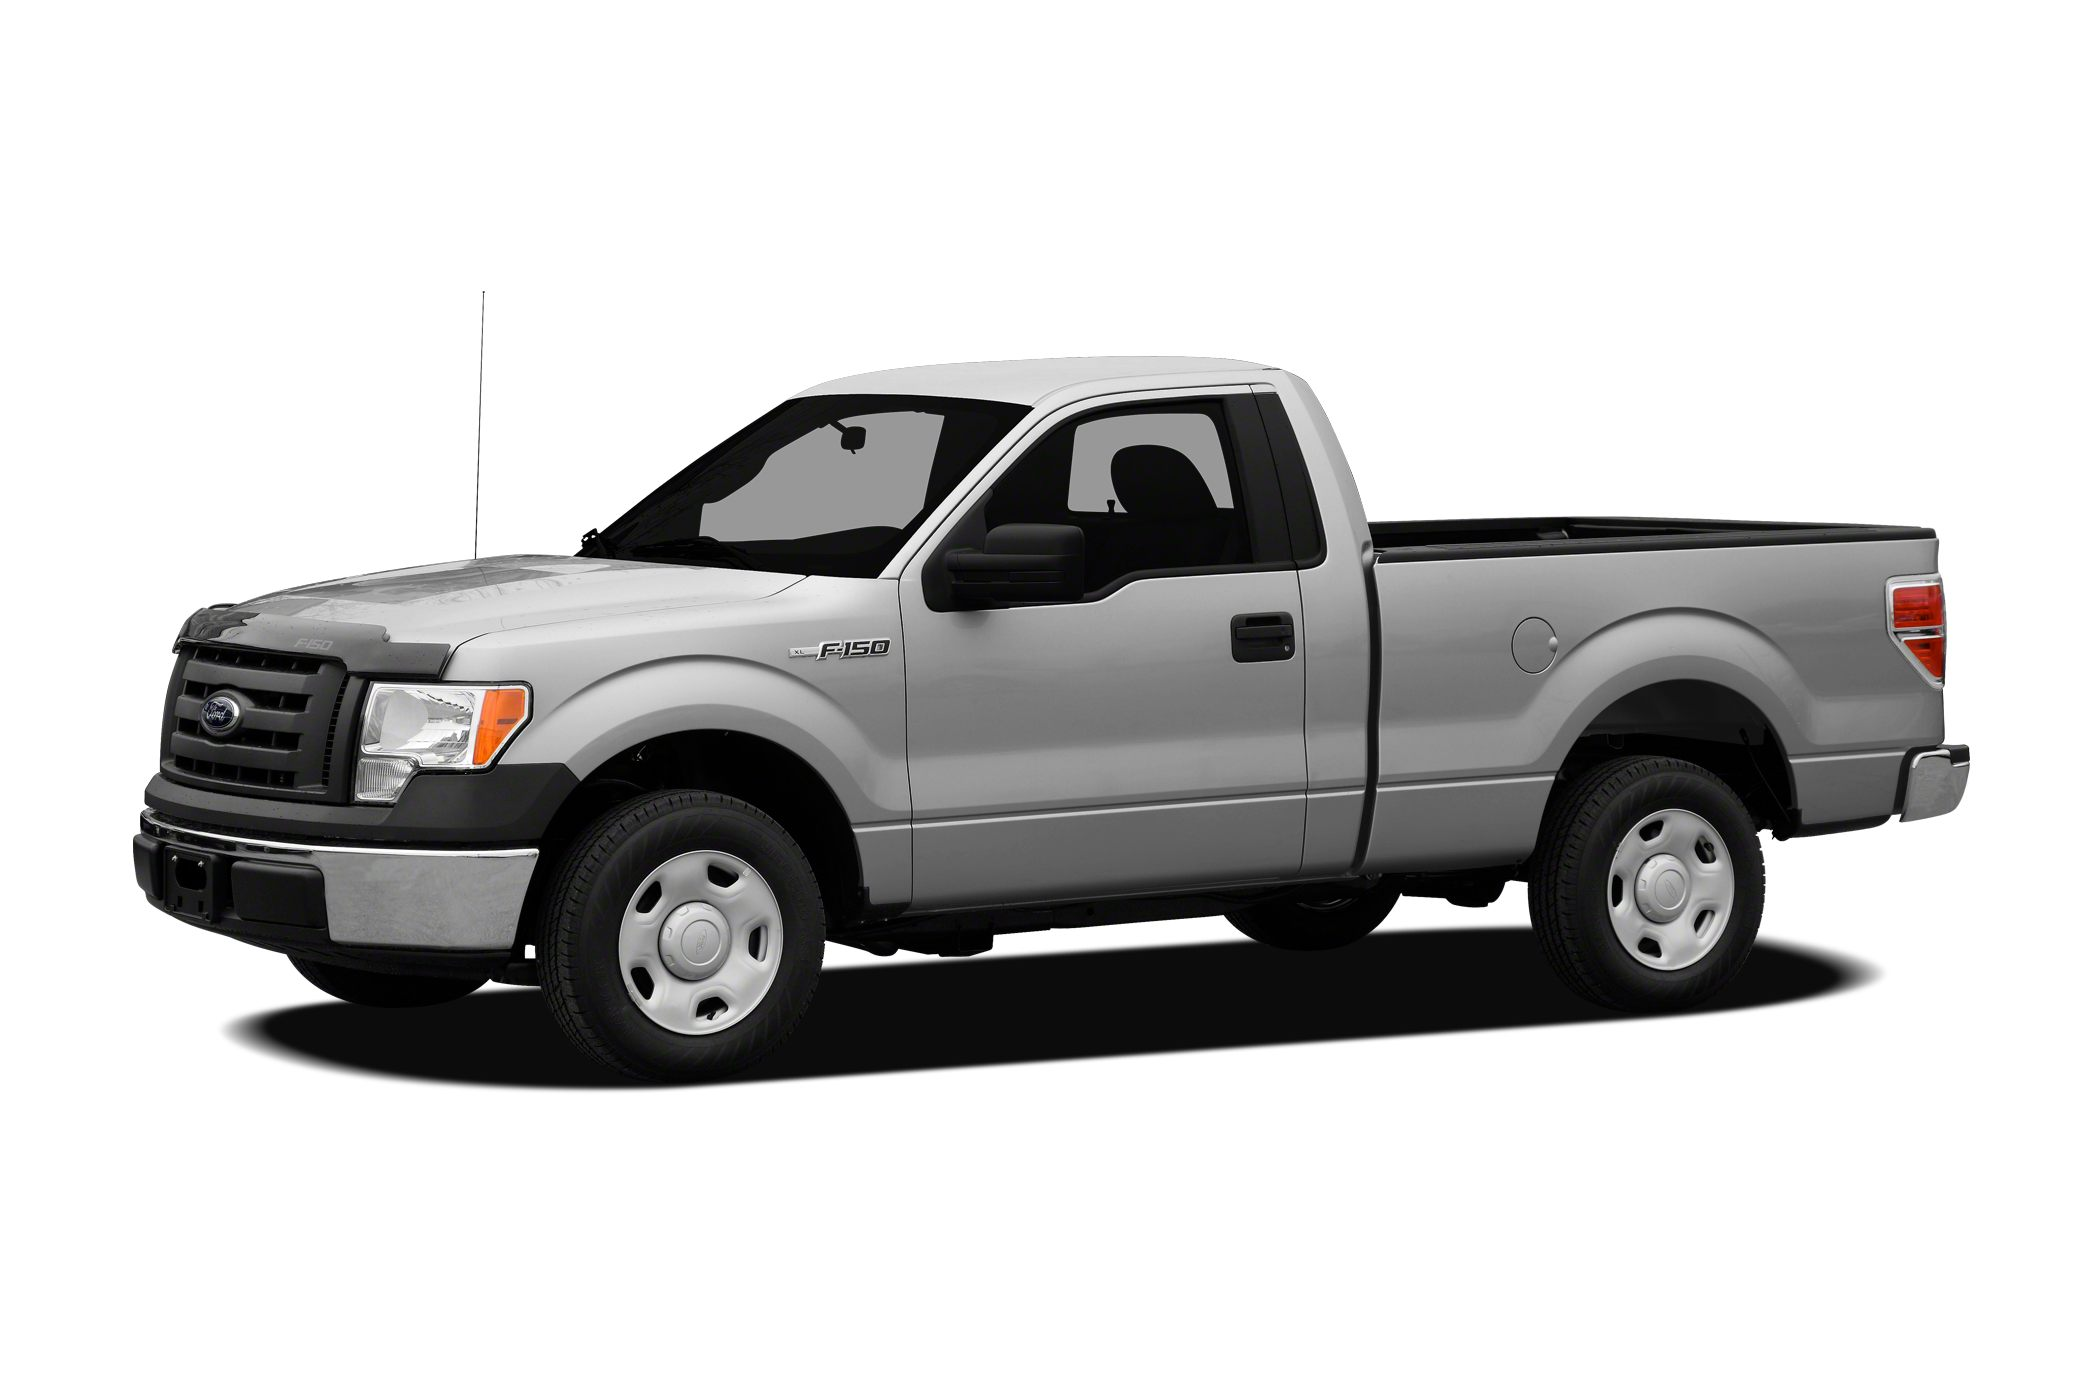 2012 Ford F150 XLT Crew Cab Pickup for sale in Devine for $27,990 with 52,076 miles.